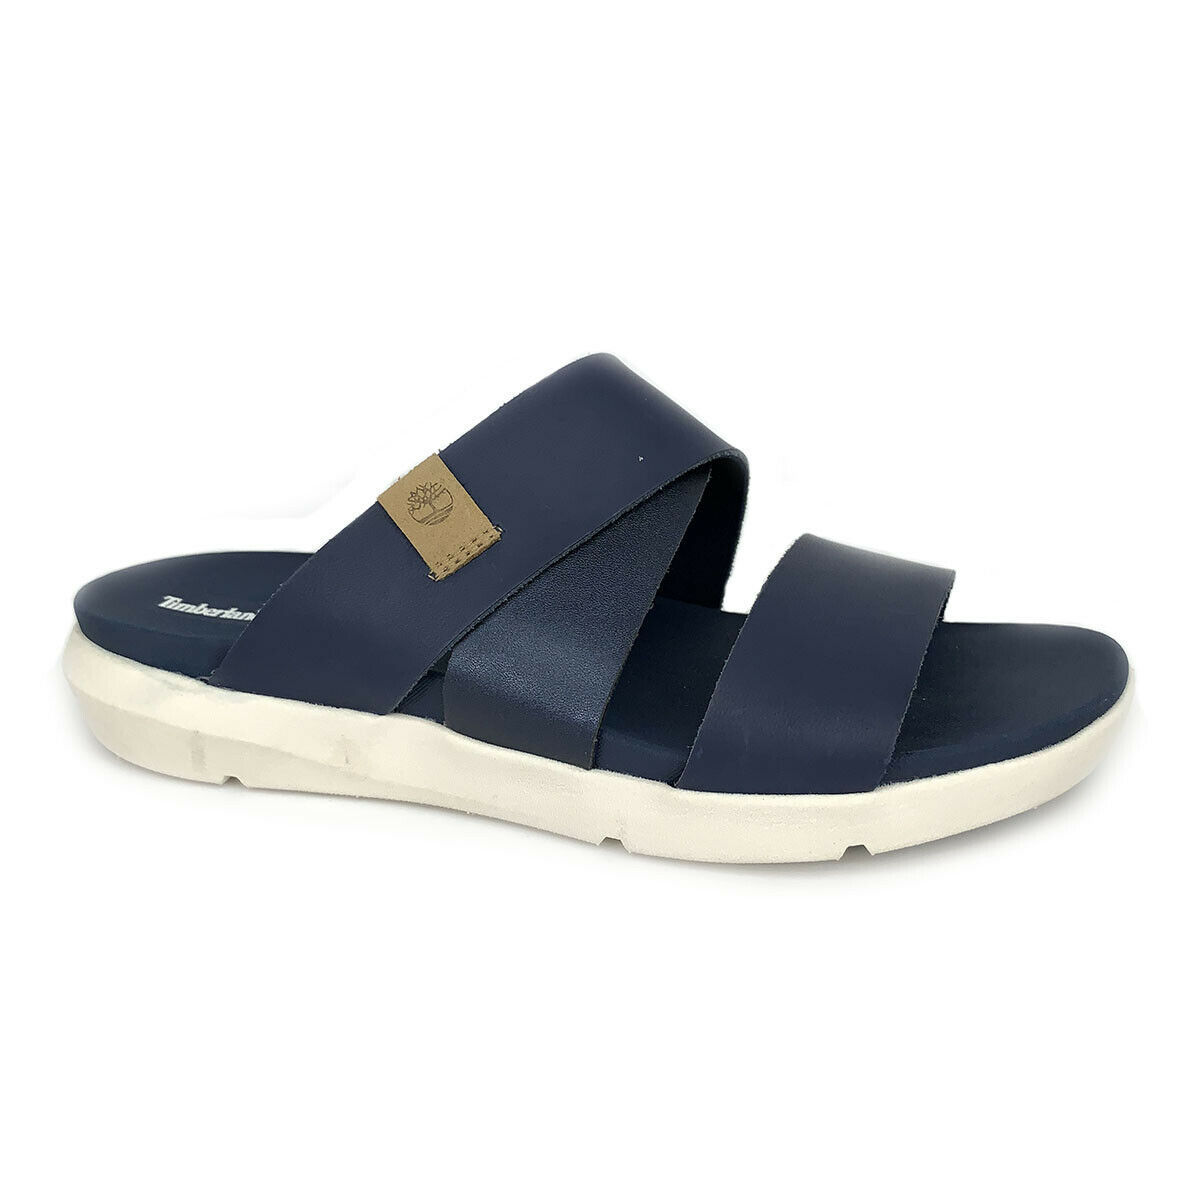 Timberland Women's Wilesport Navy Slip On Sandals A1XPH